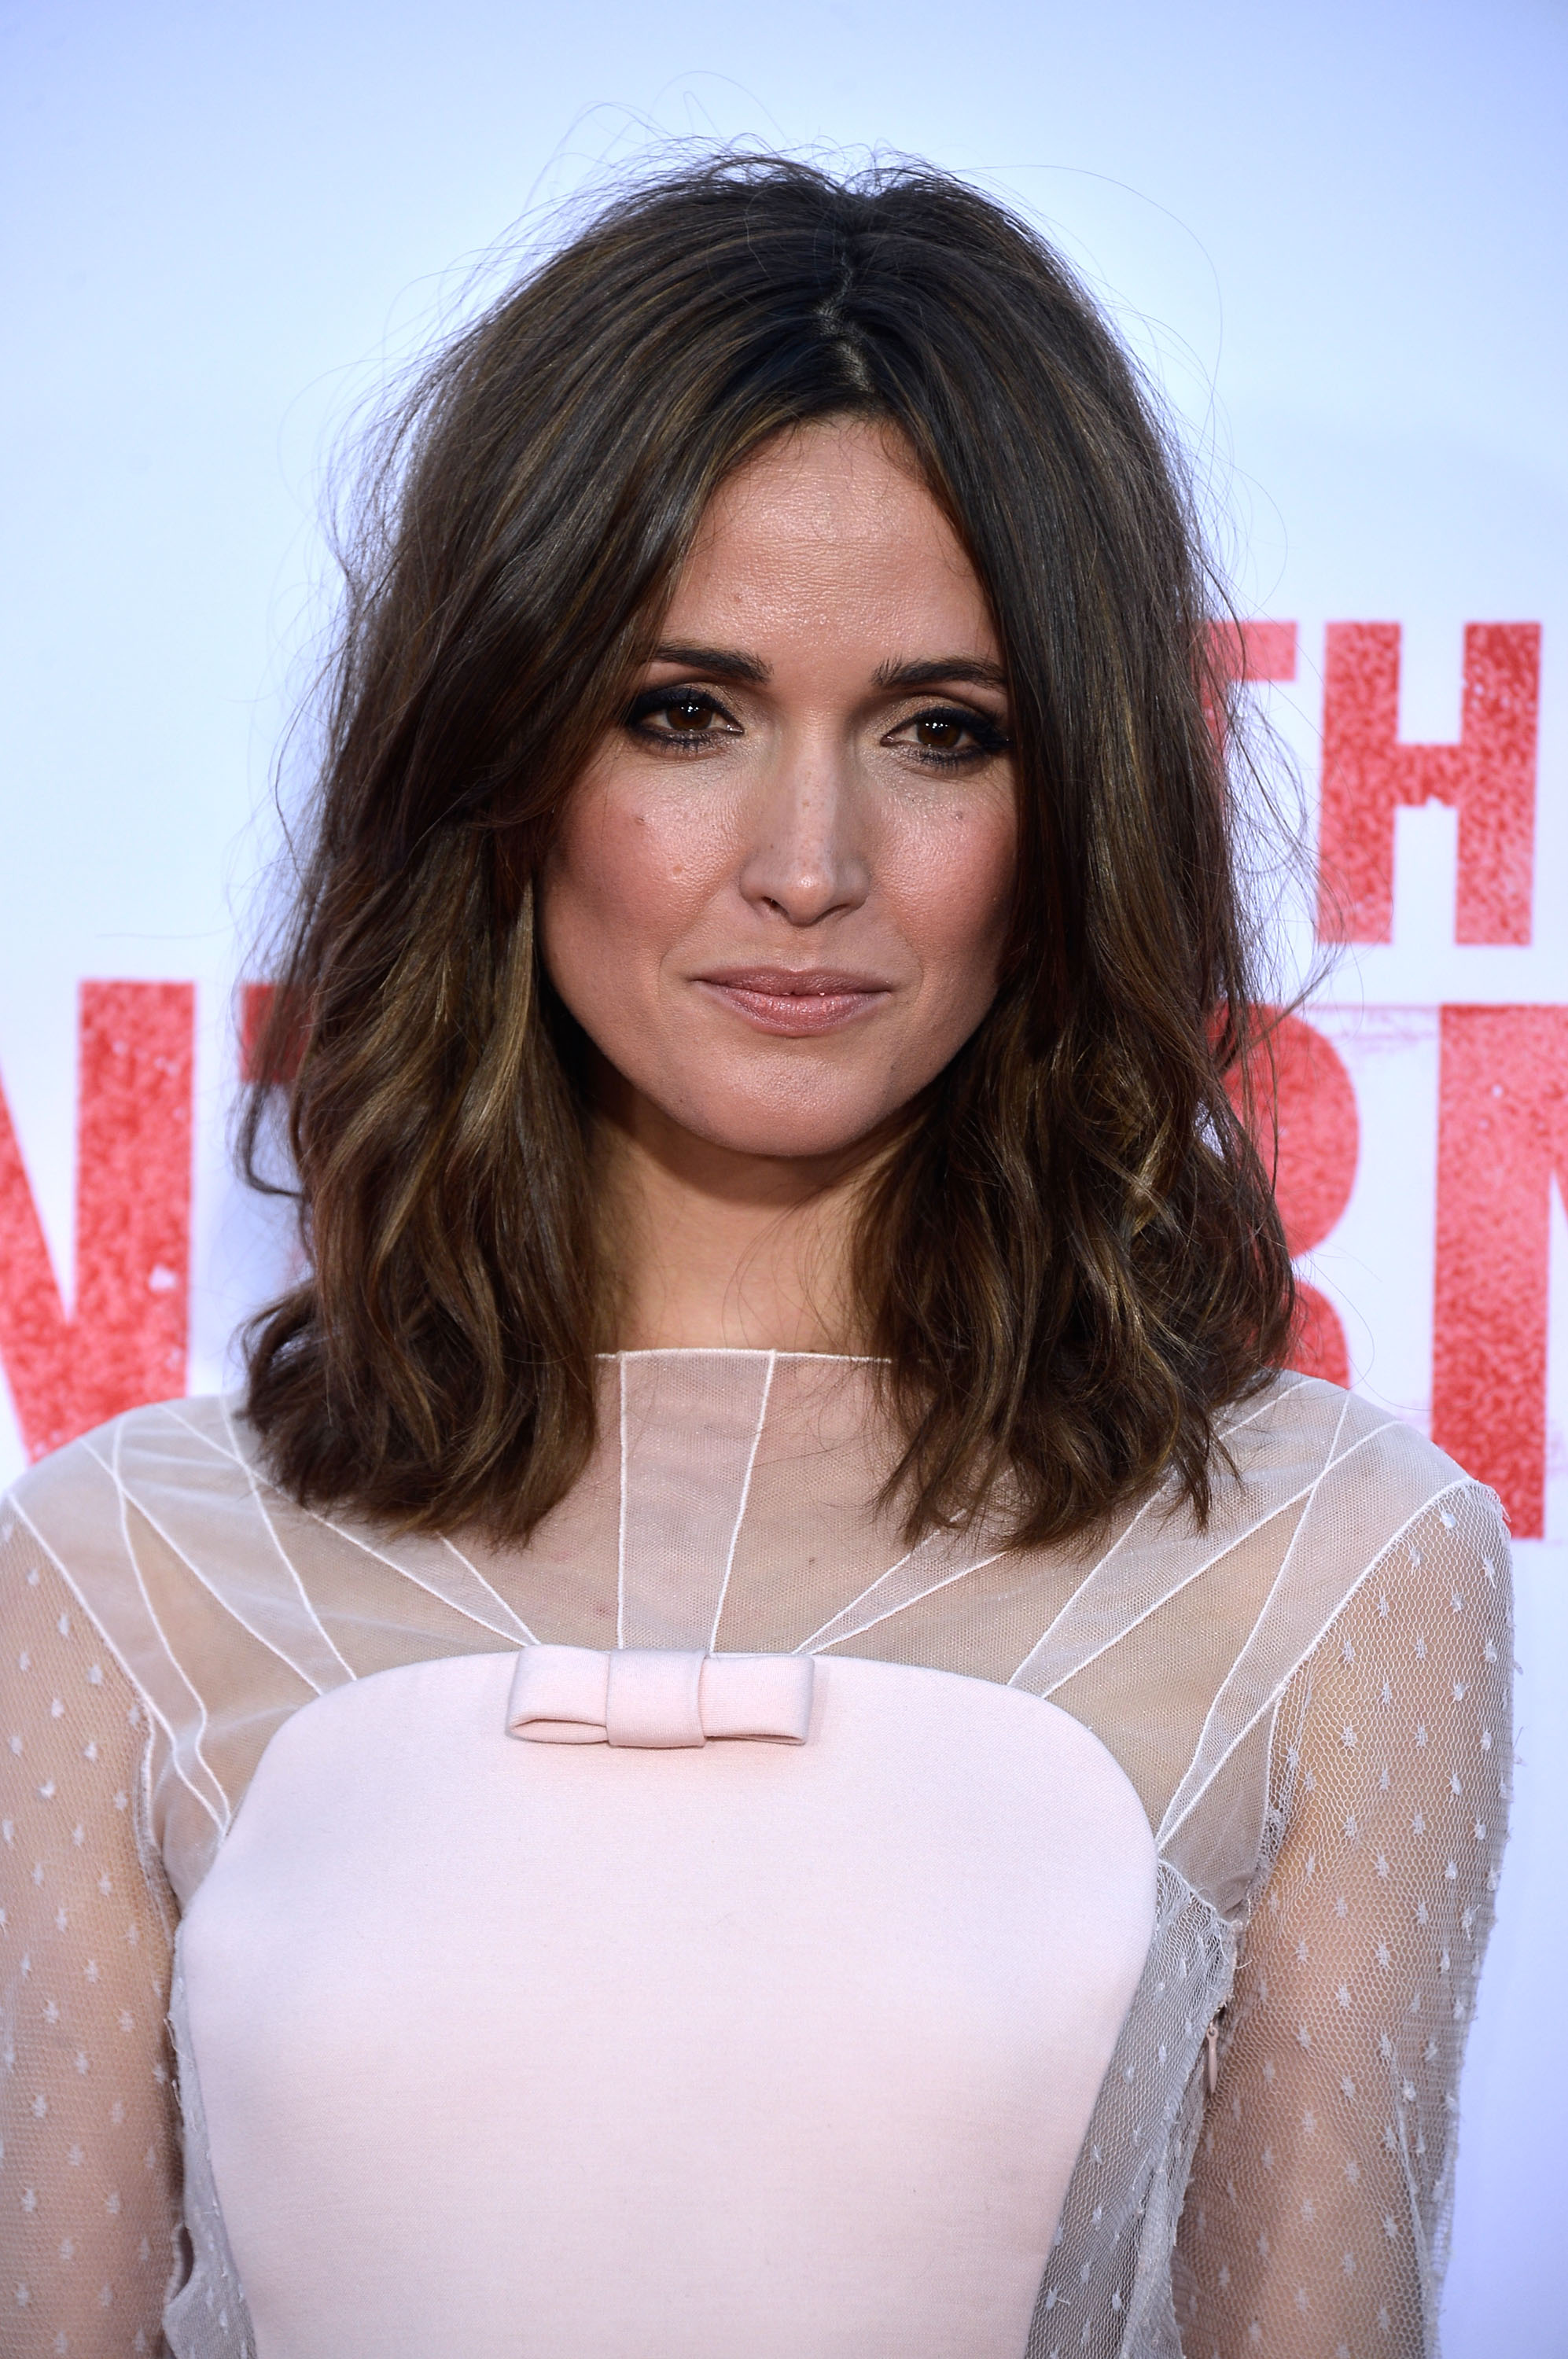 Rose Byrne, Singer of R-Rated Songs, In Talks For 'Annie ...